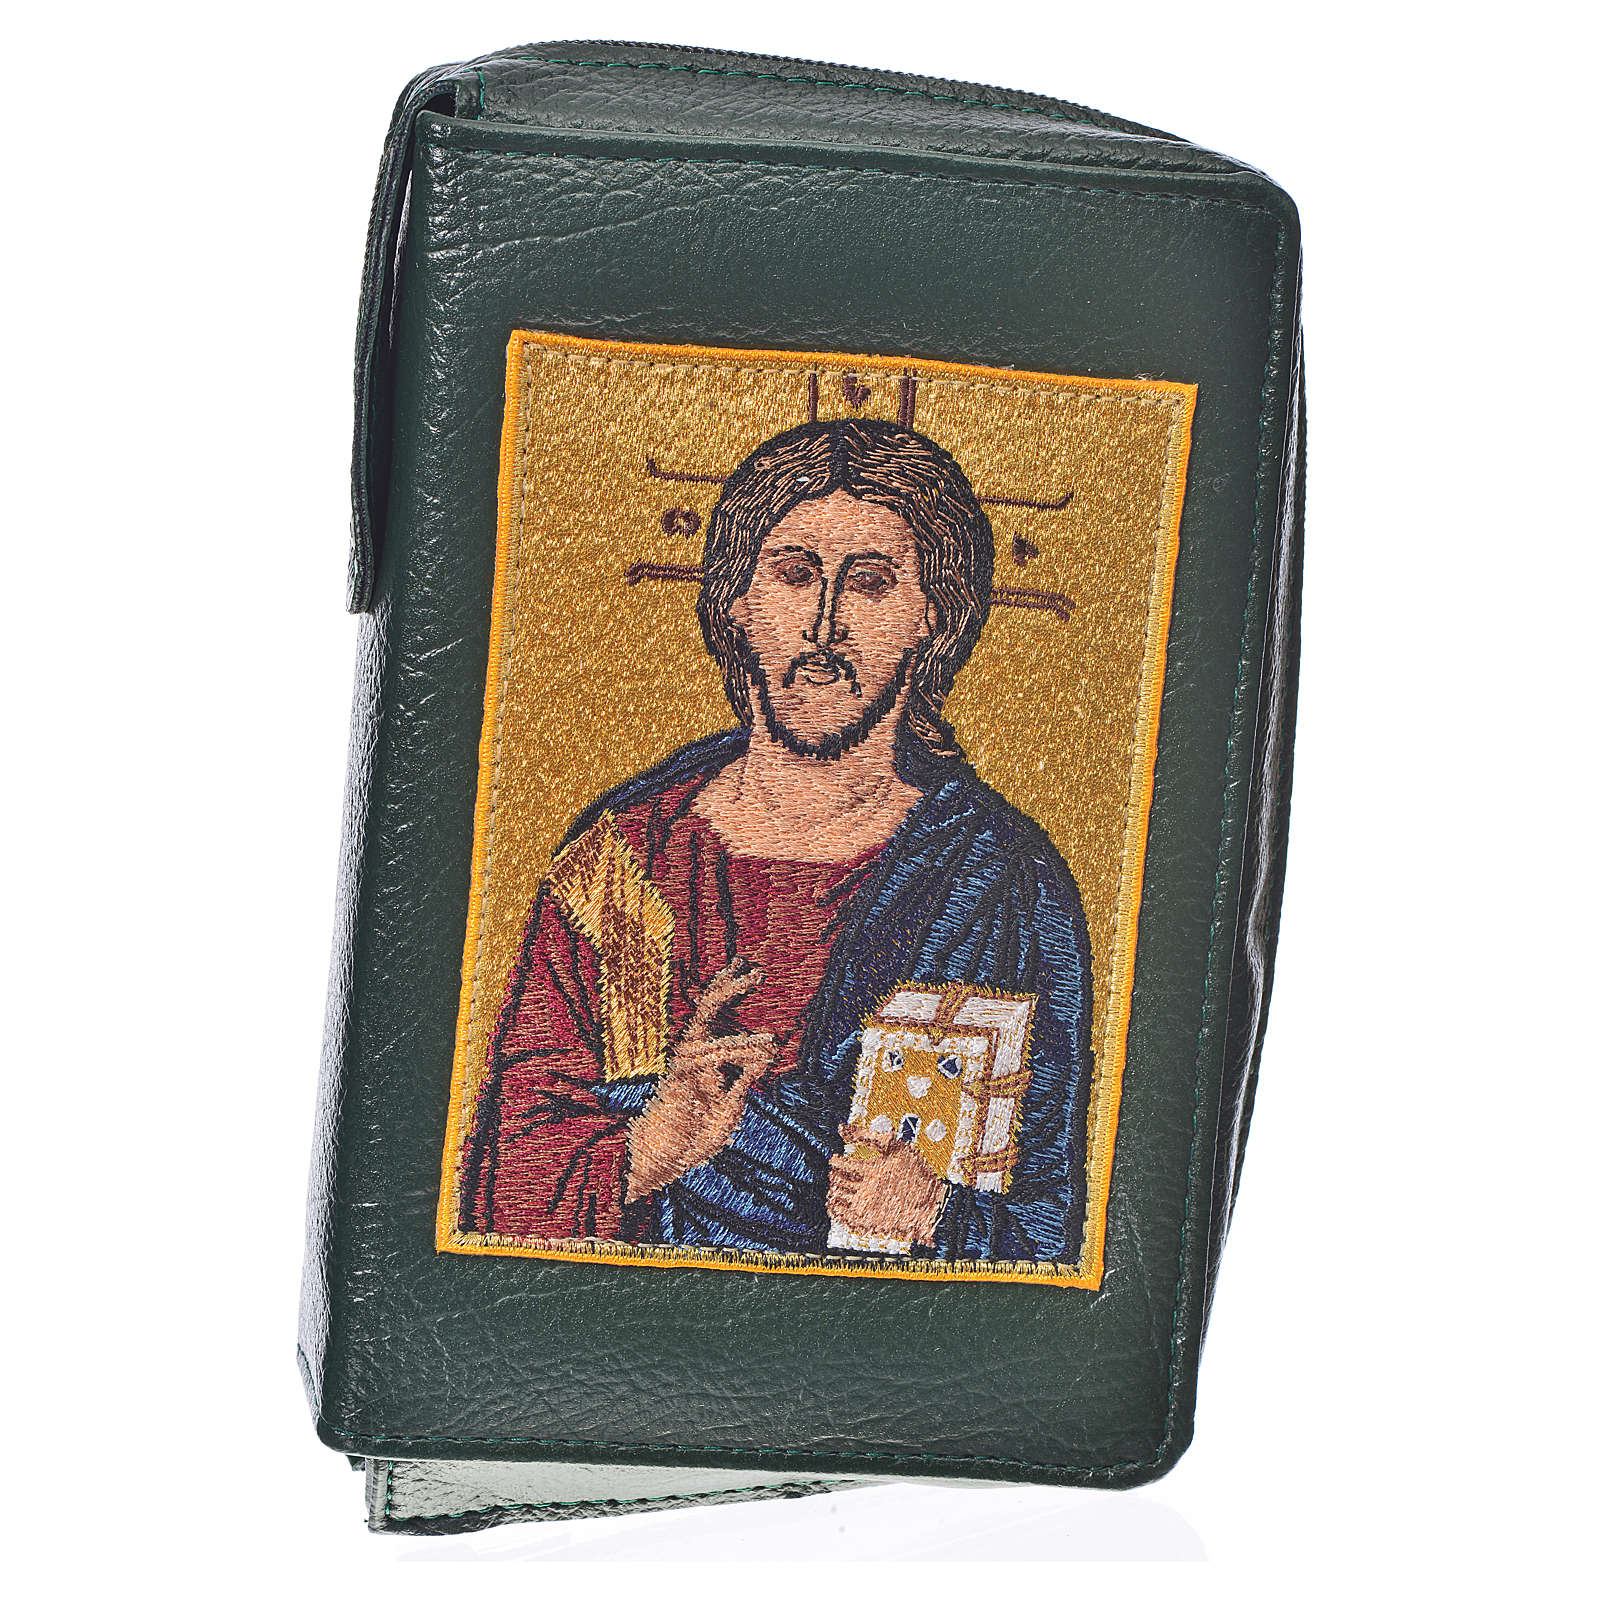 Ordinary Time III cover, green bonded leather with image of the Christ Pantocrator 4